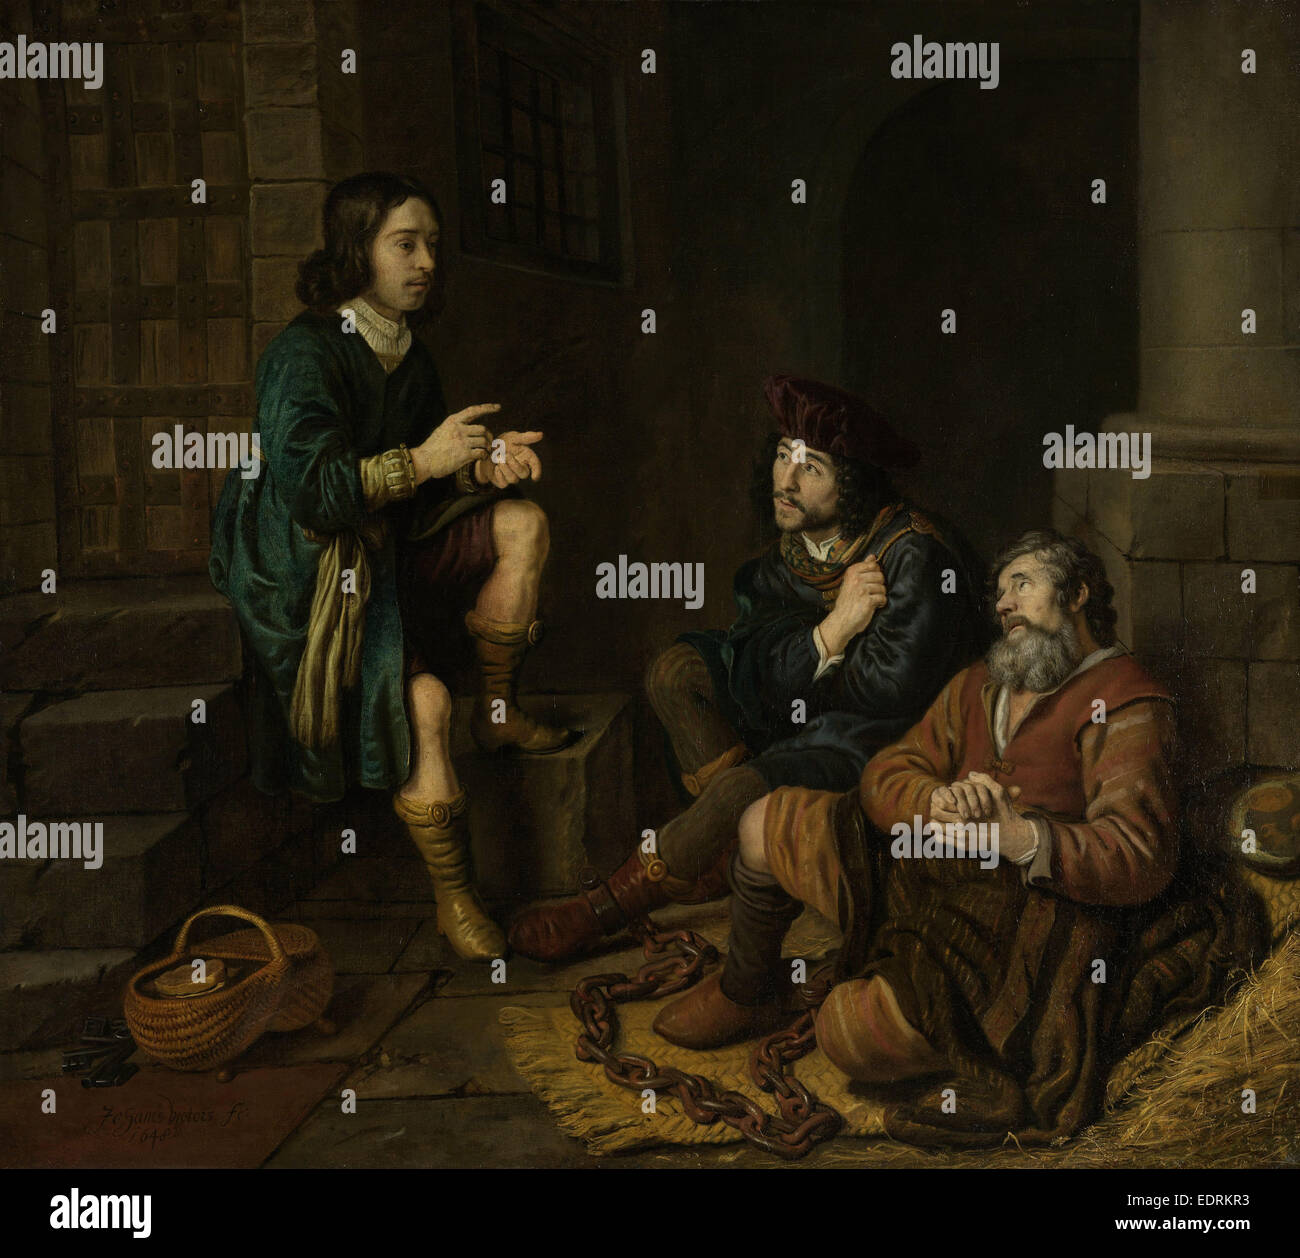 Joseph Interprets the Dreams of the Baker and the Butler, Jan Victors, 1648 - Stock Image